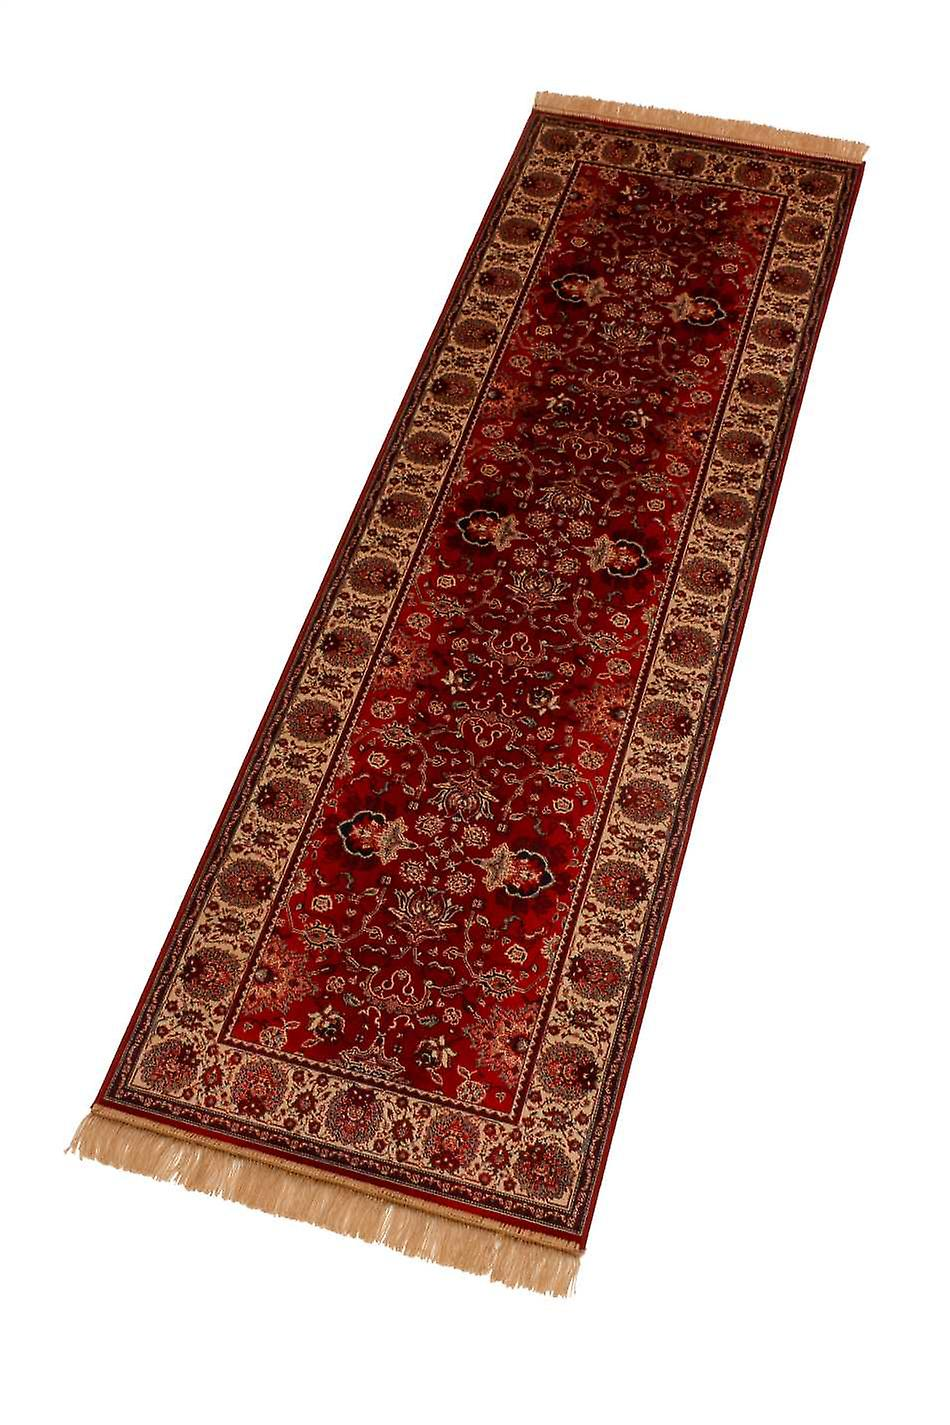 Red Indian Agra Artificial Faux Silk Effect Hall Runner Rugs 4620/12